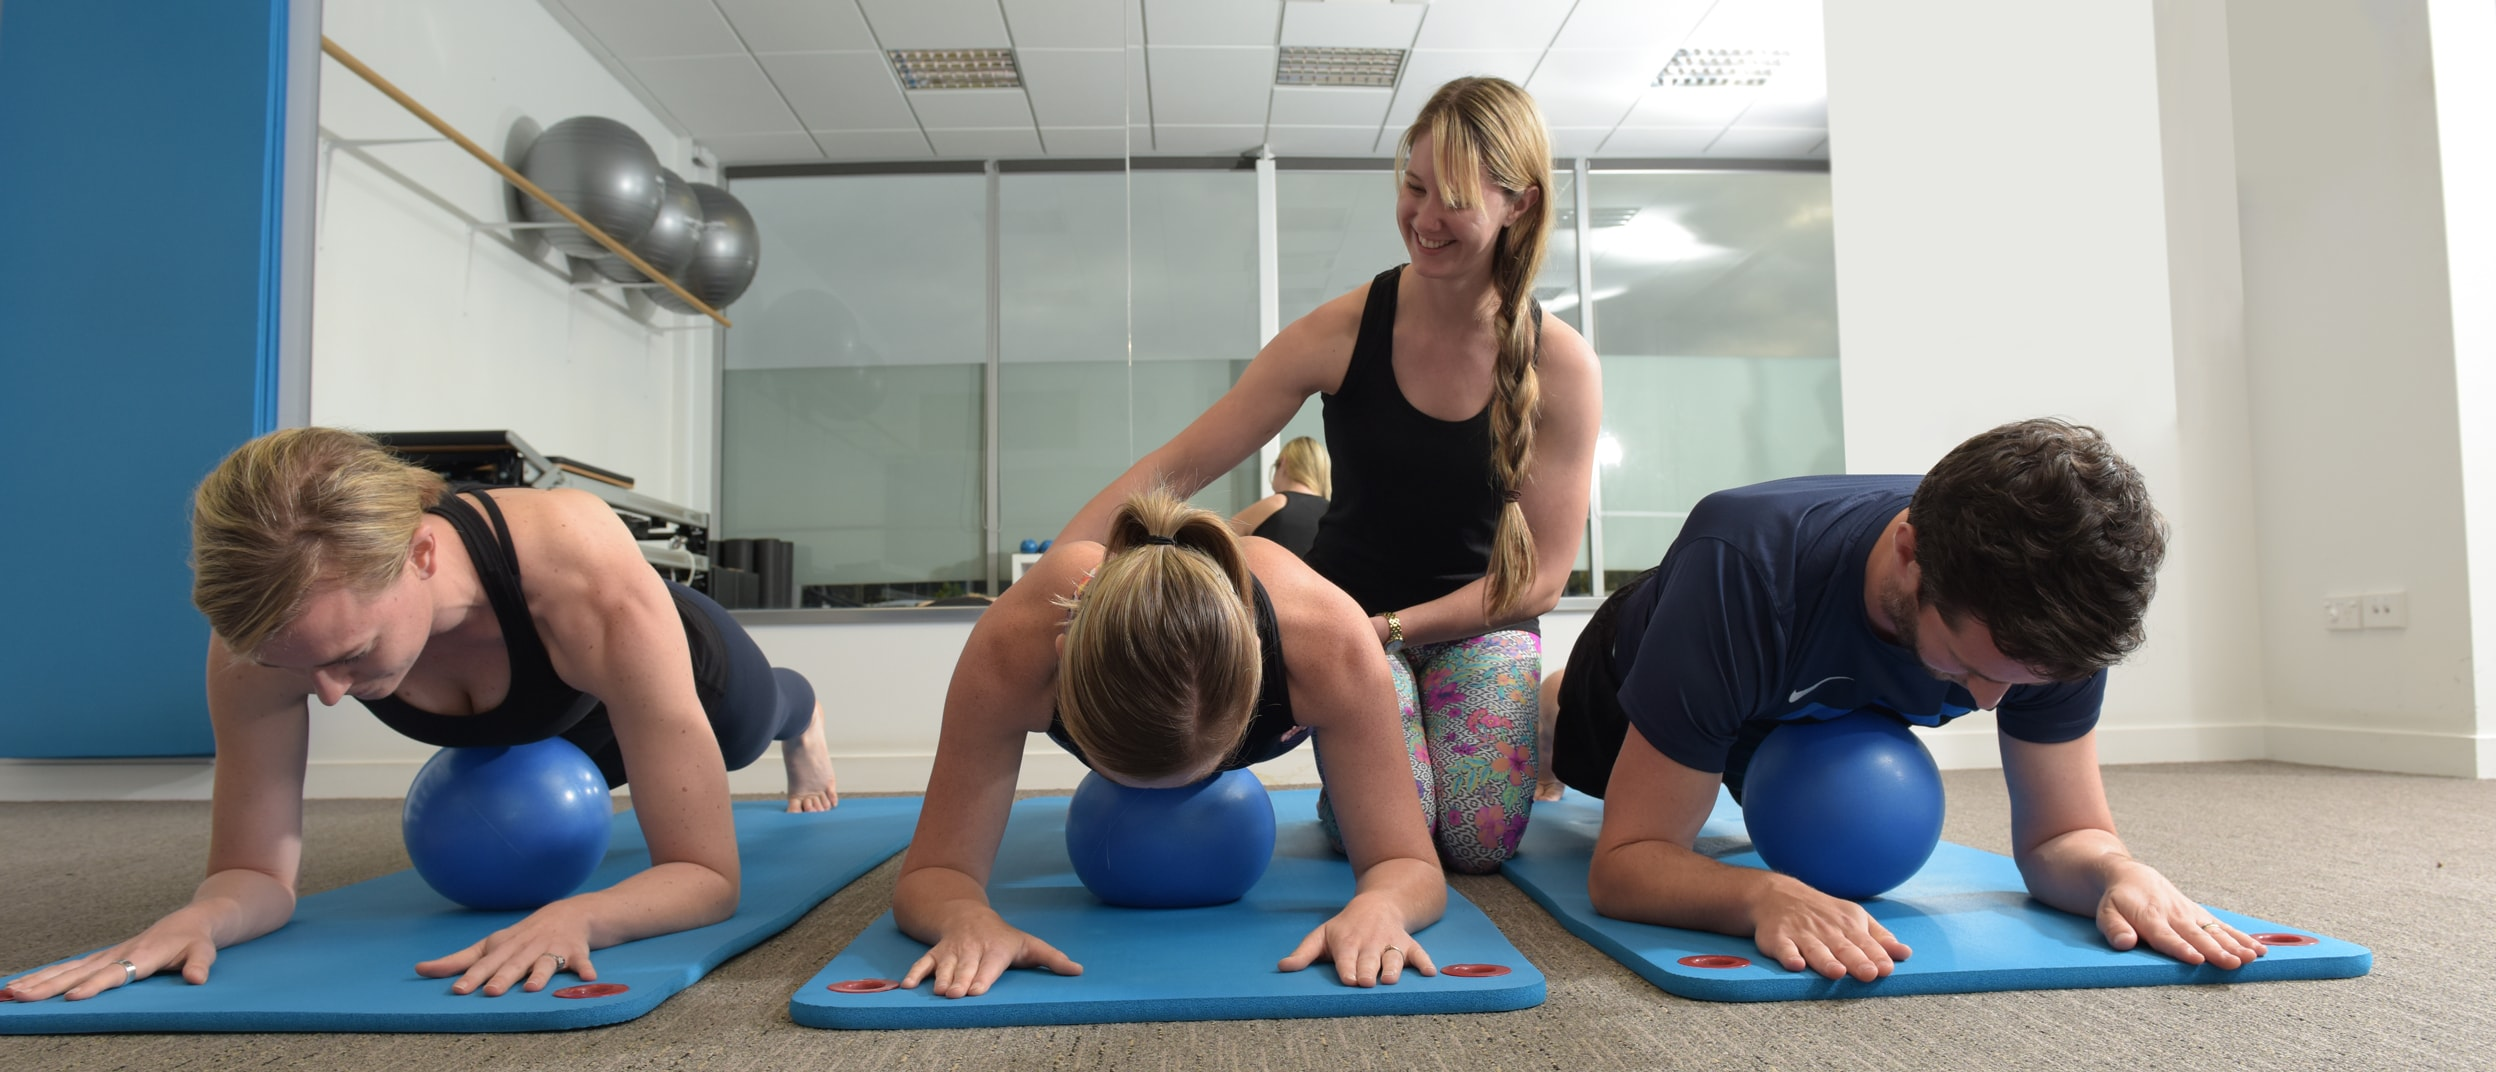 Pilates Tauranga | Pilates Classes Mount Maunganui, Bethlehem, Pyes Pa